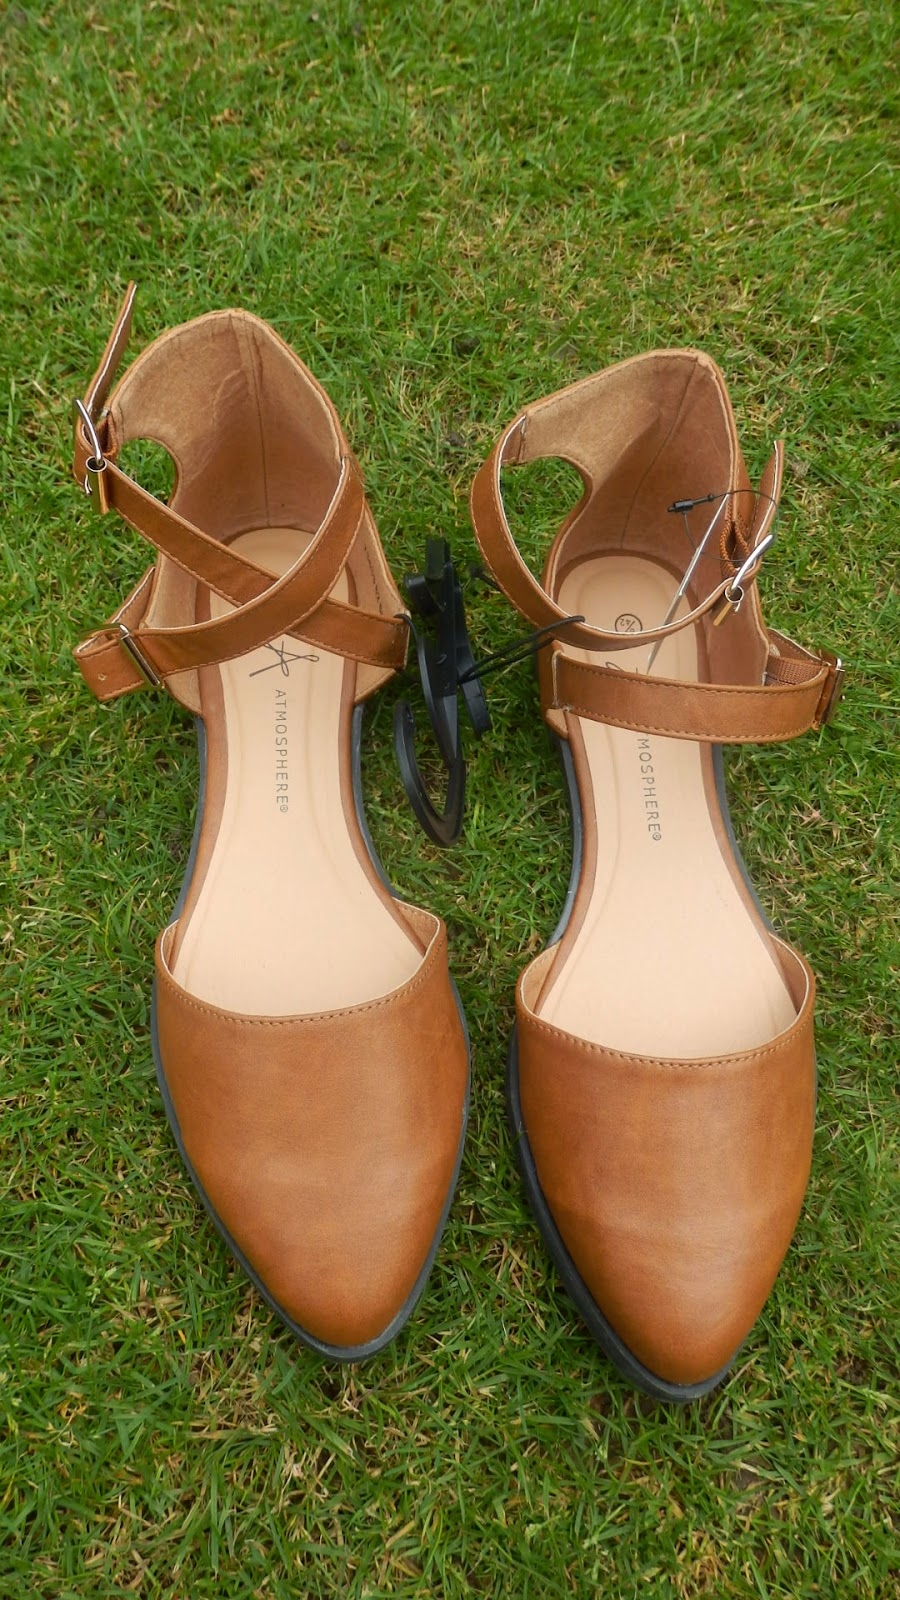 Tan Shoes from Primark